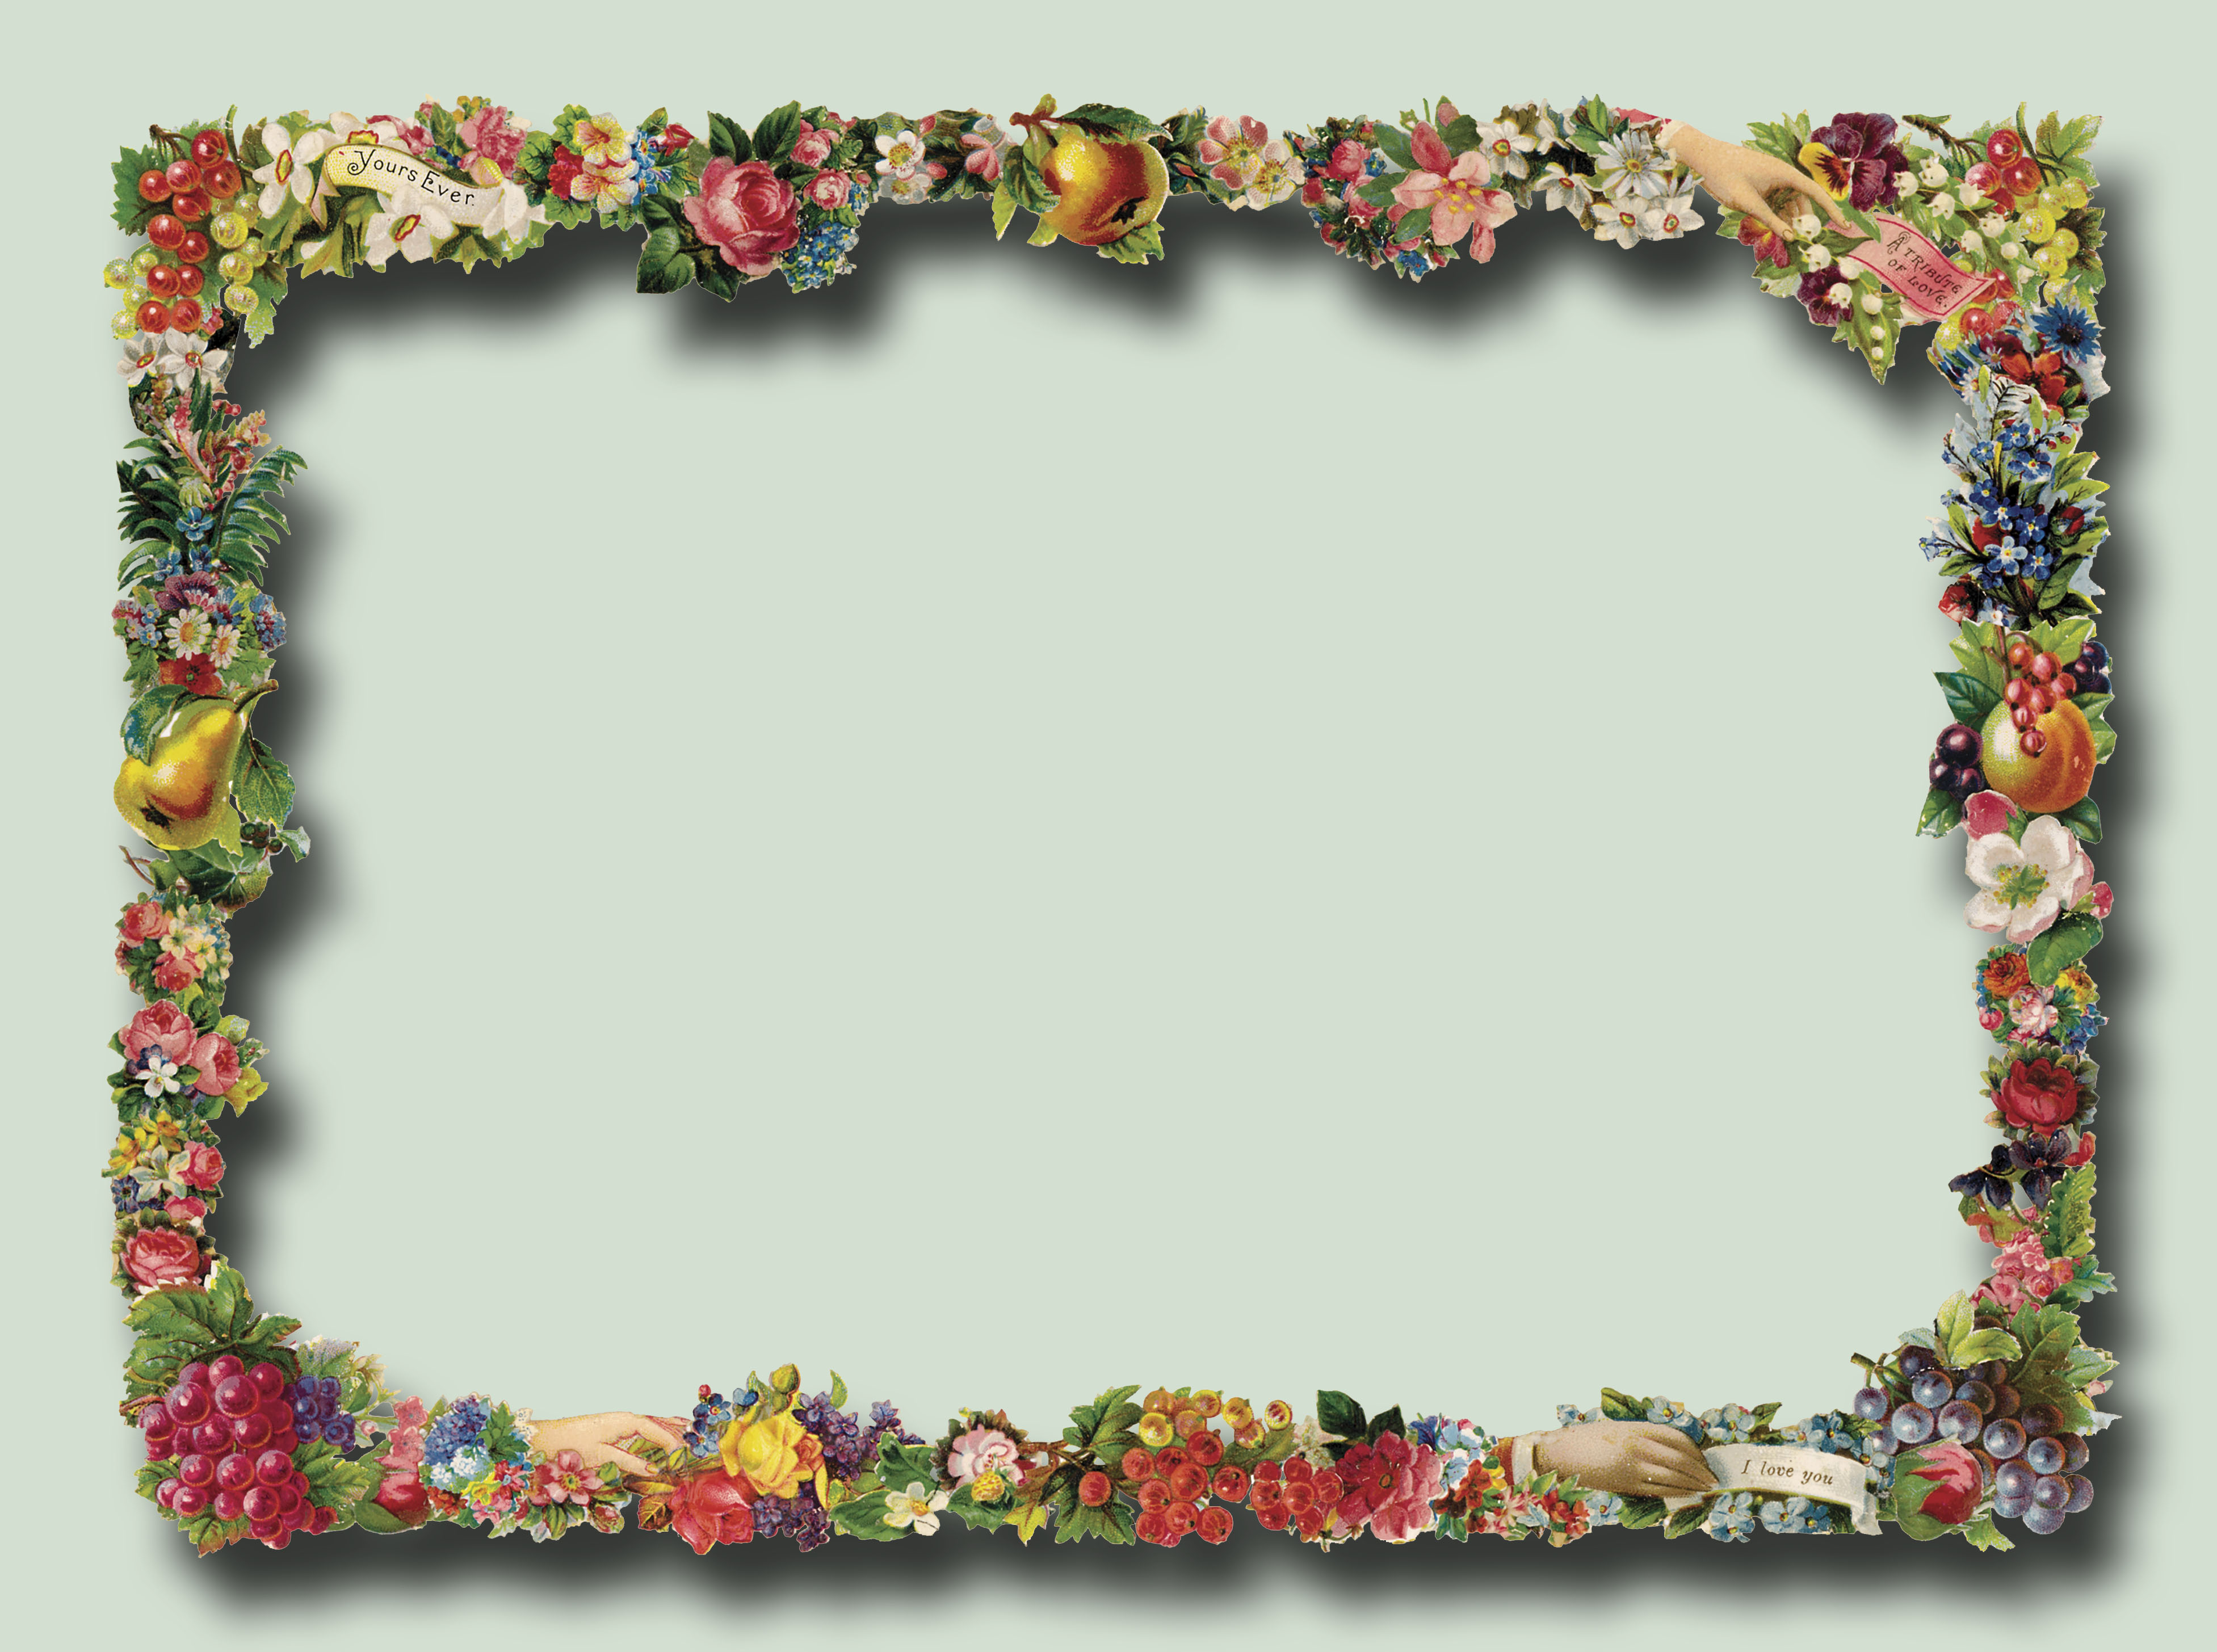 11 photo frames for photoshop psd free download images free photoshop wedding templates psd for Border psd